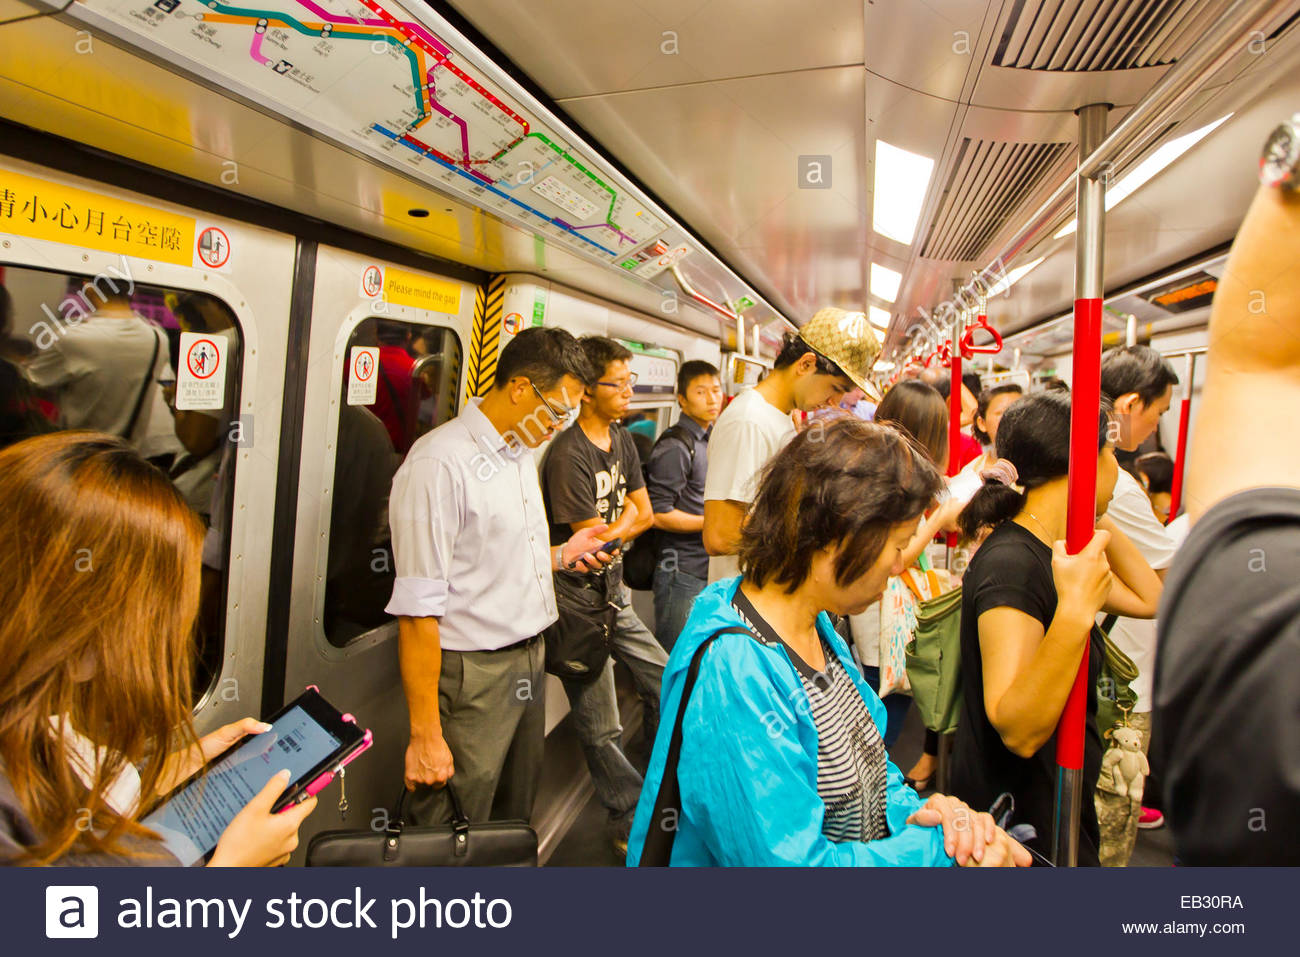 Travelers immersed in smart phones and other technology while riding the Hong Kong subway. - Stock Image